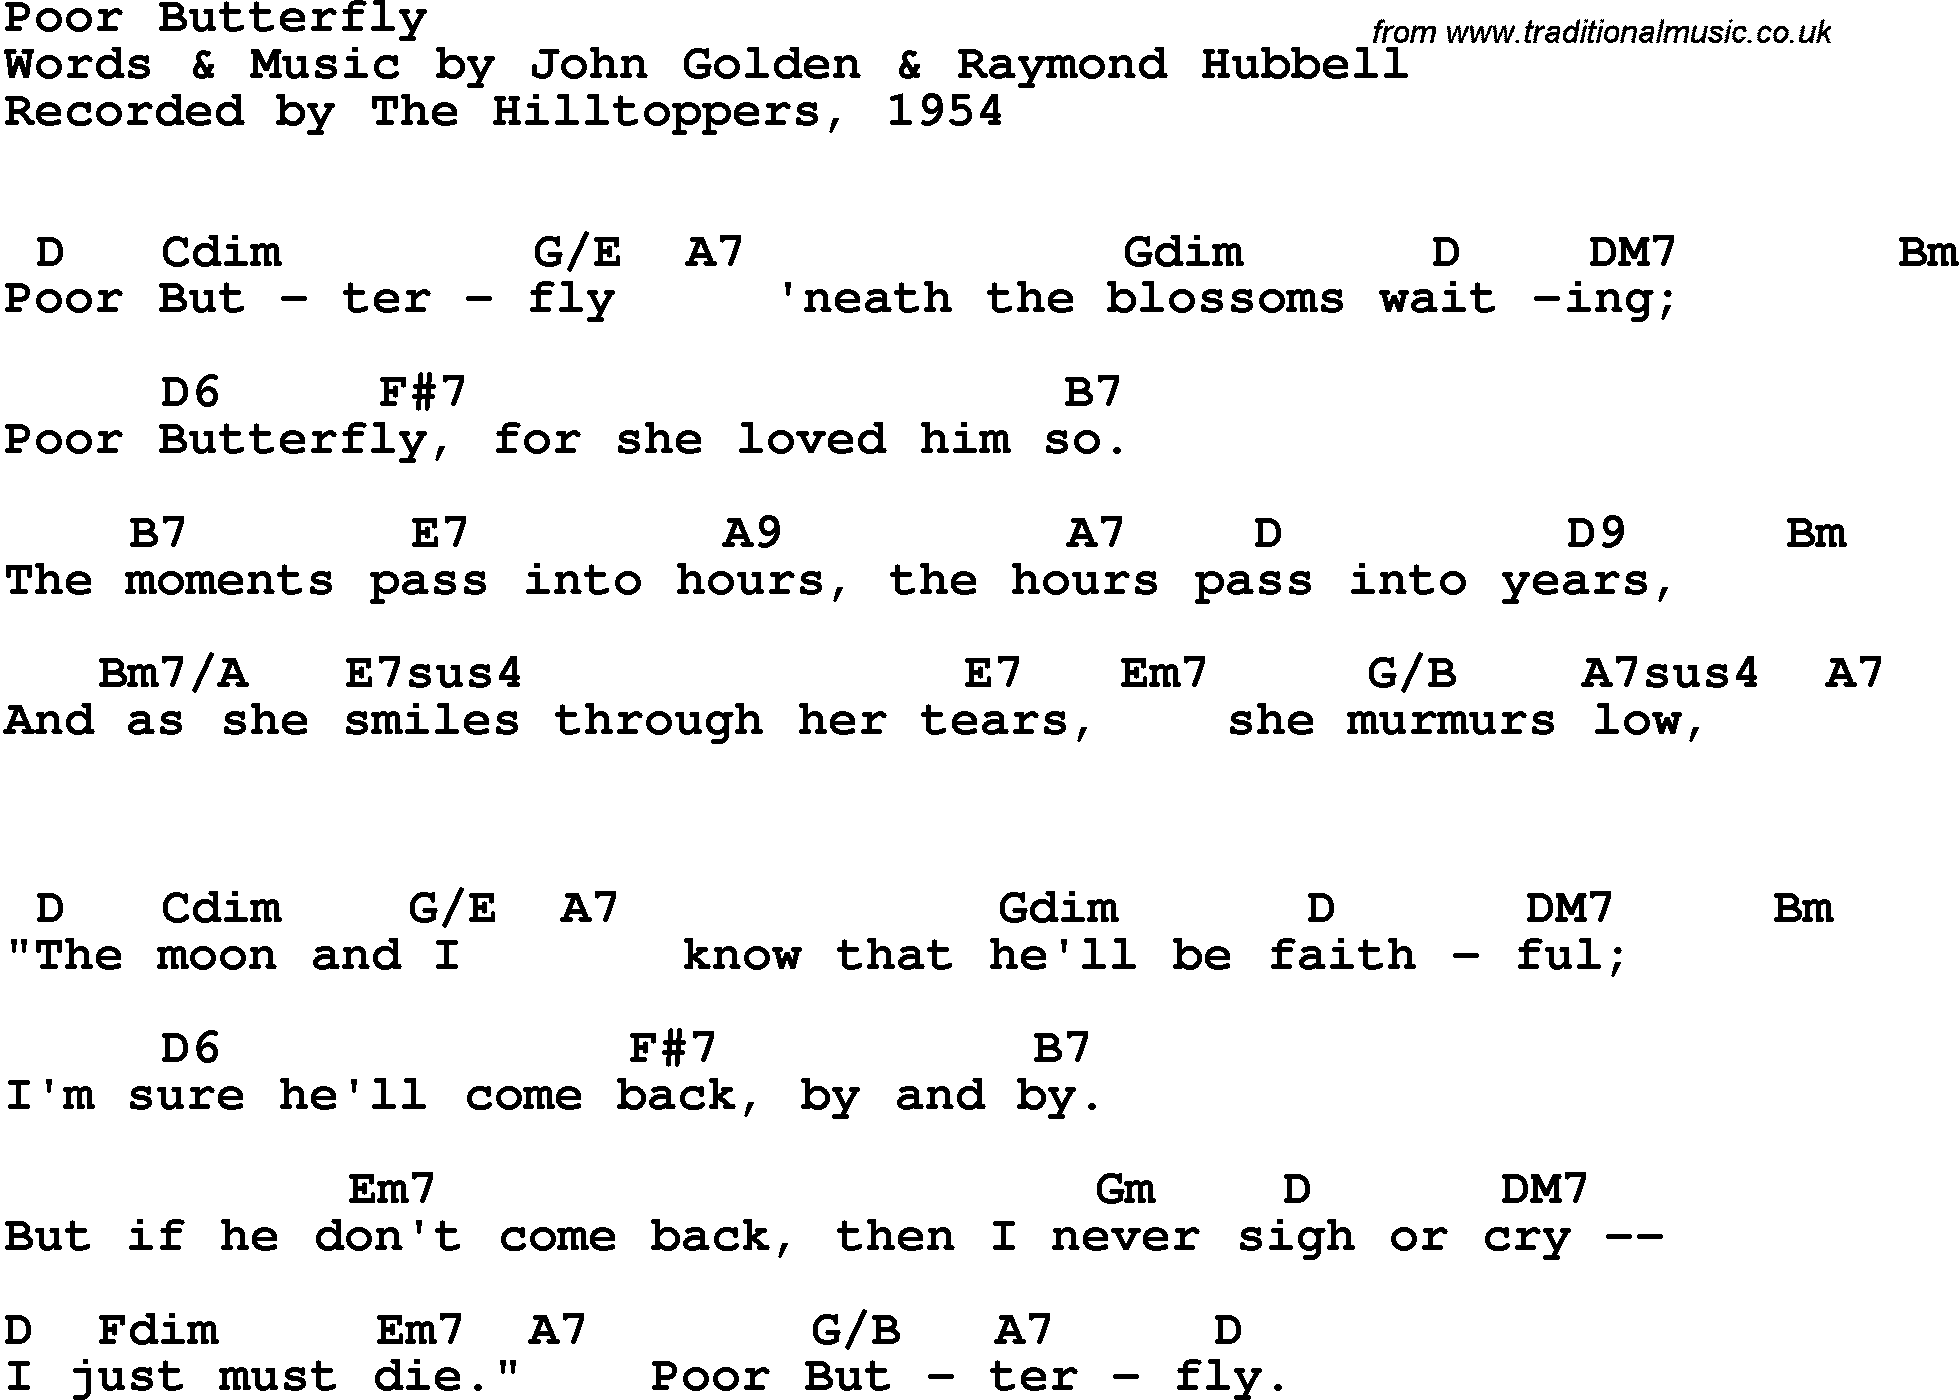 Song Lyrics With Guitar Chords For Poor Butterfly The Hilltoppers